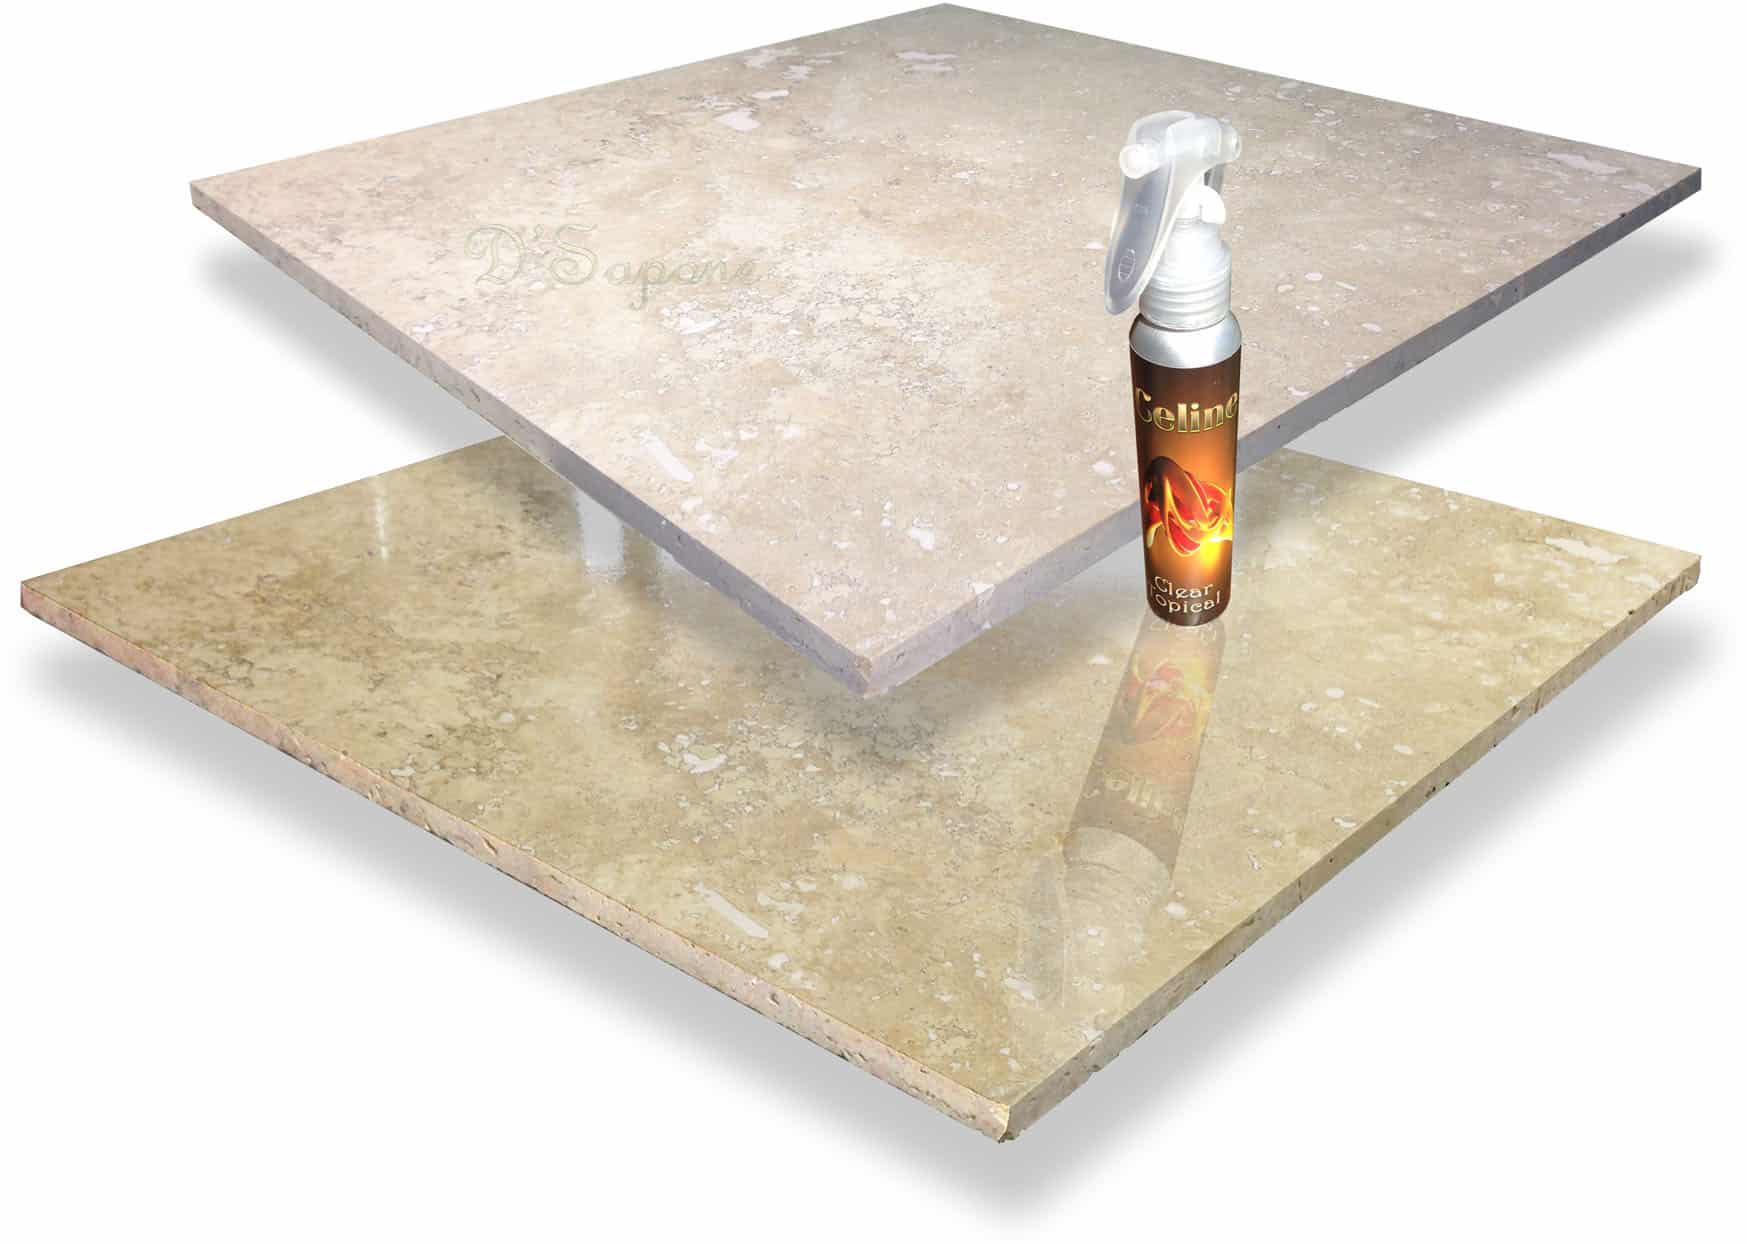 Travertine Sealing with a Sheen